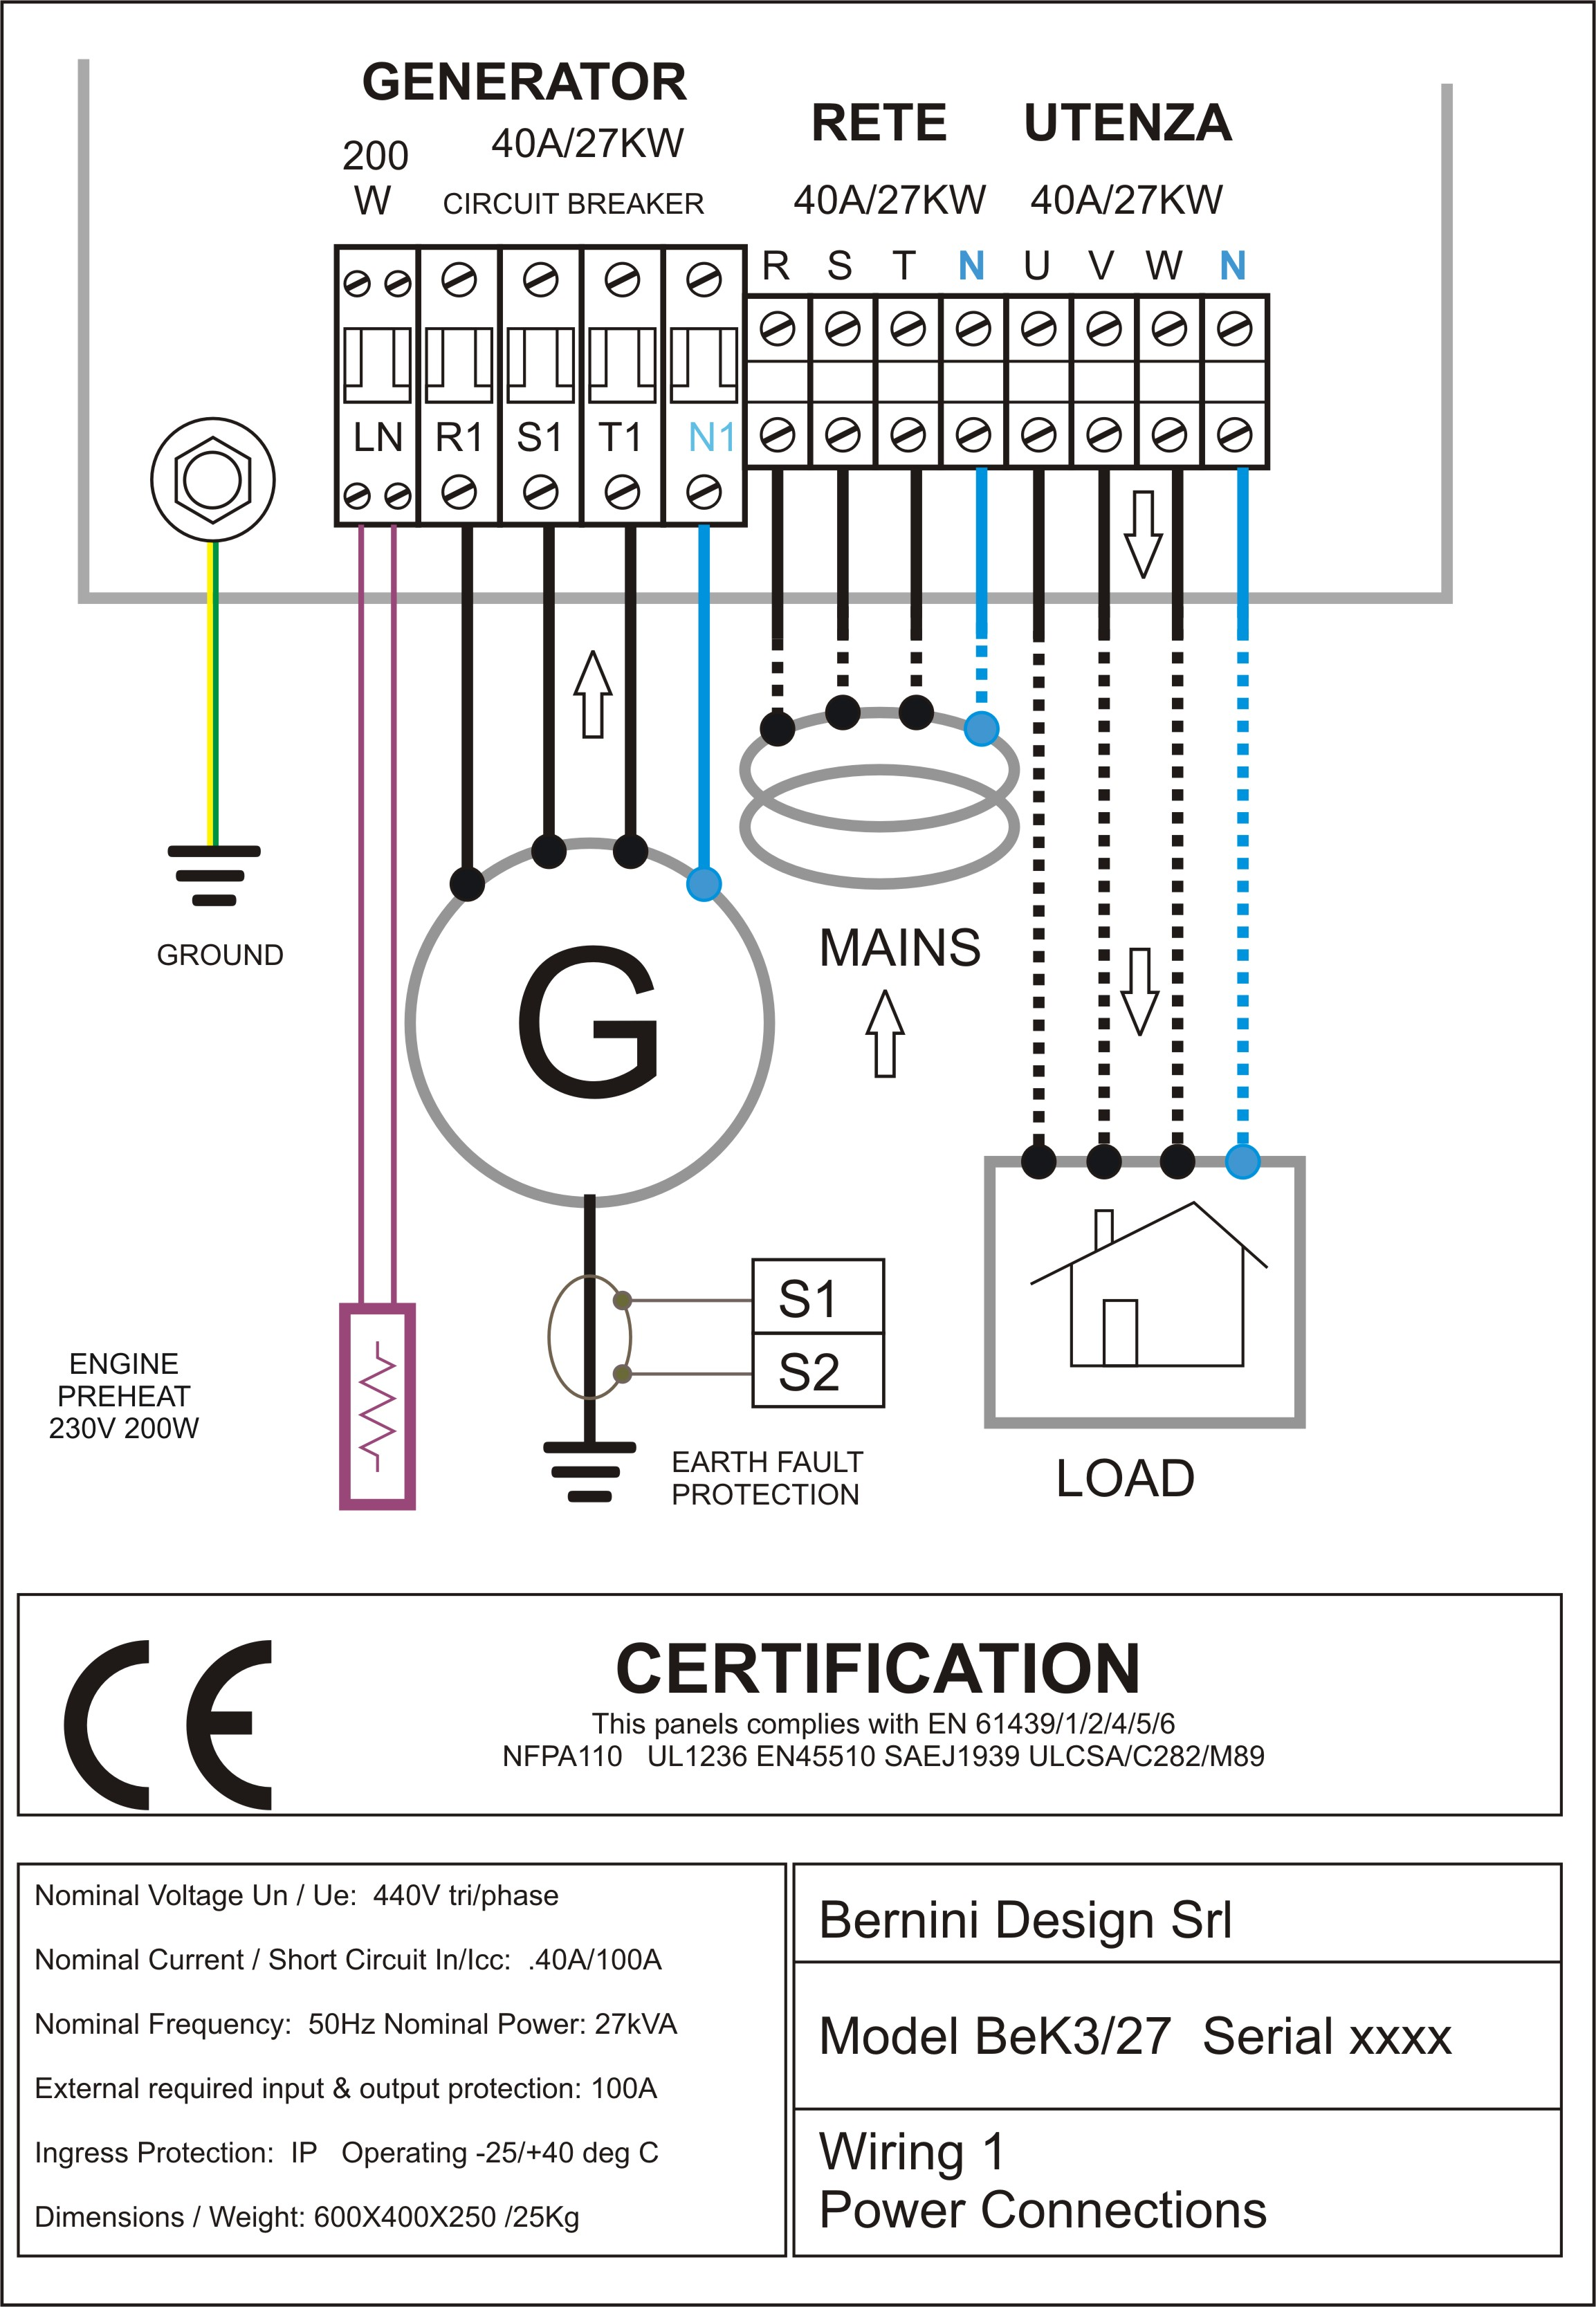 Maker Ac Wiring Diagram Diagram For 2000 Vw Cabrio Engine Wire